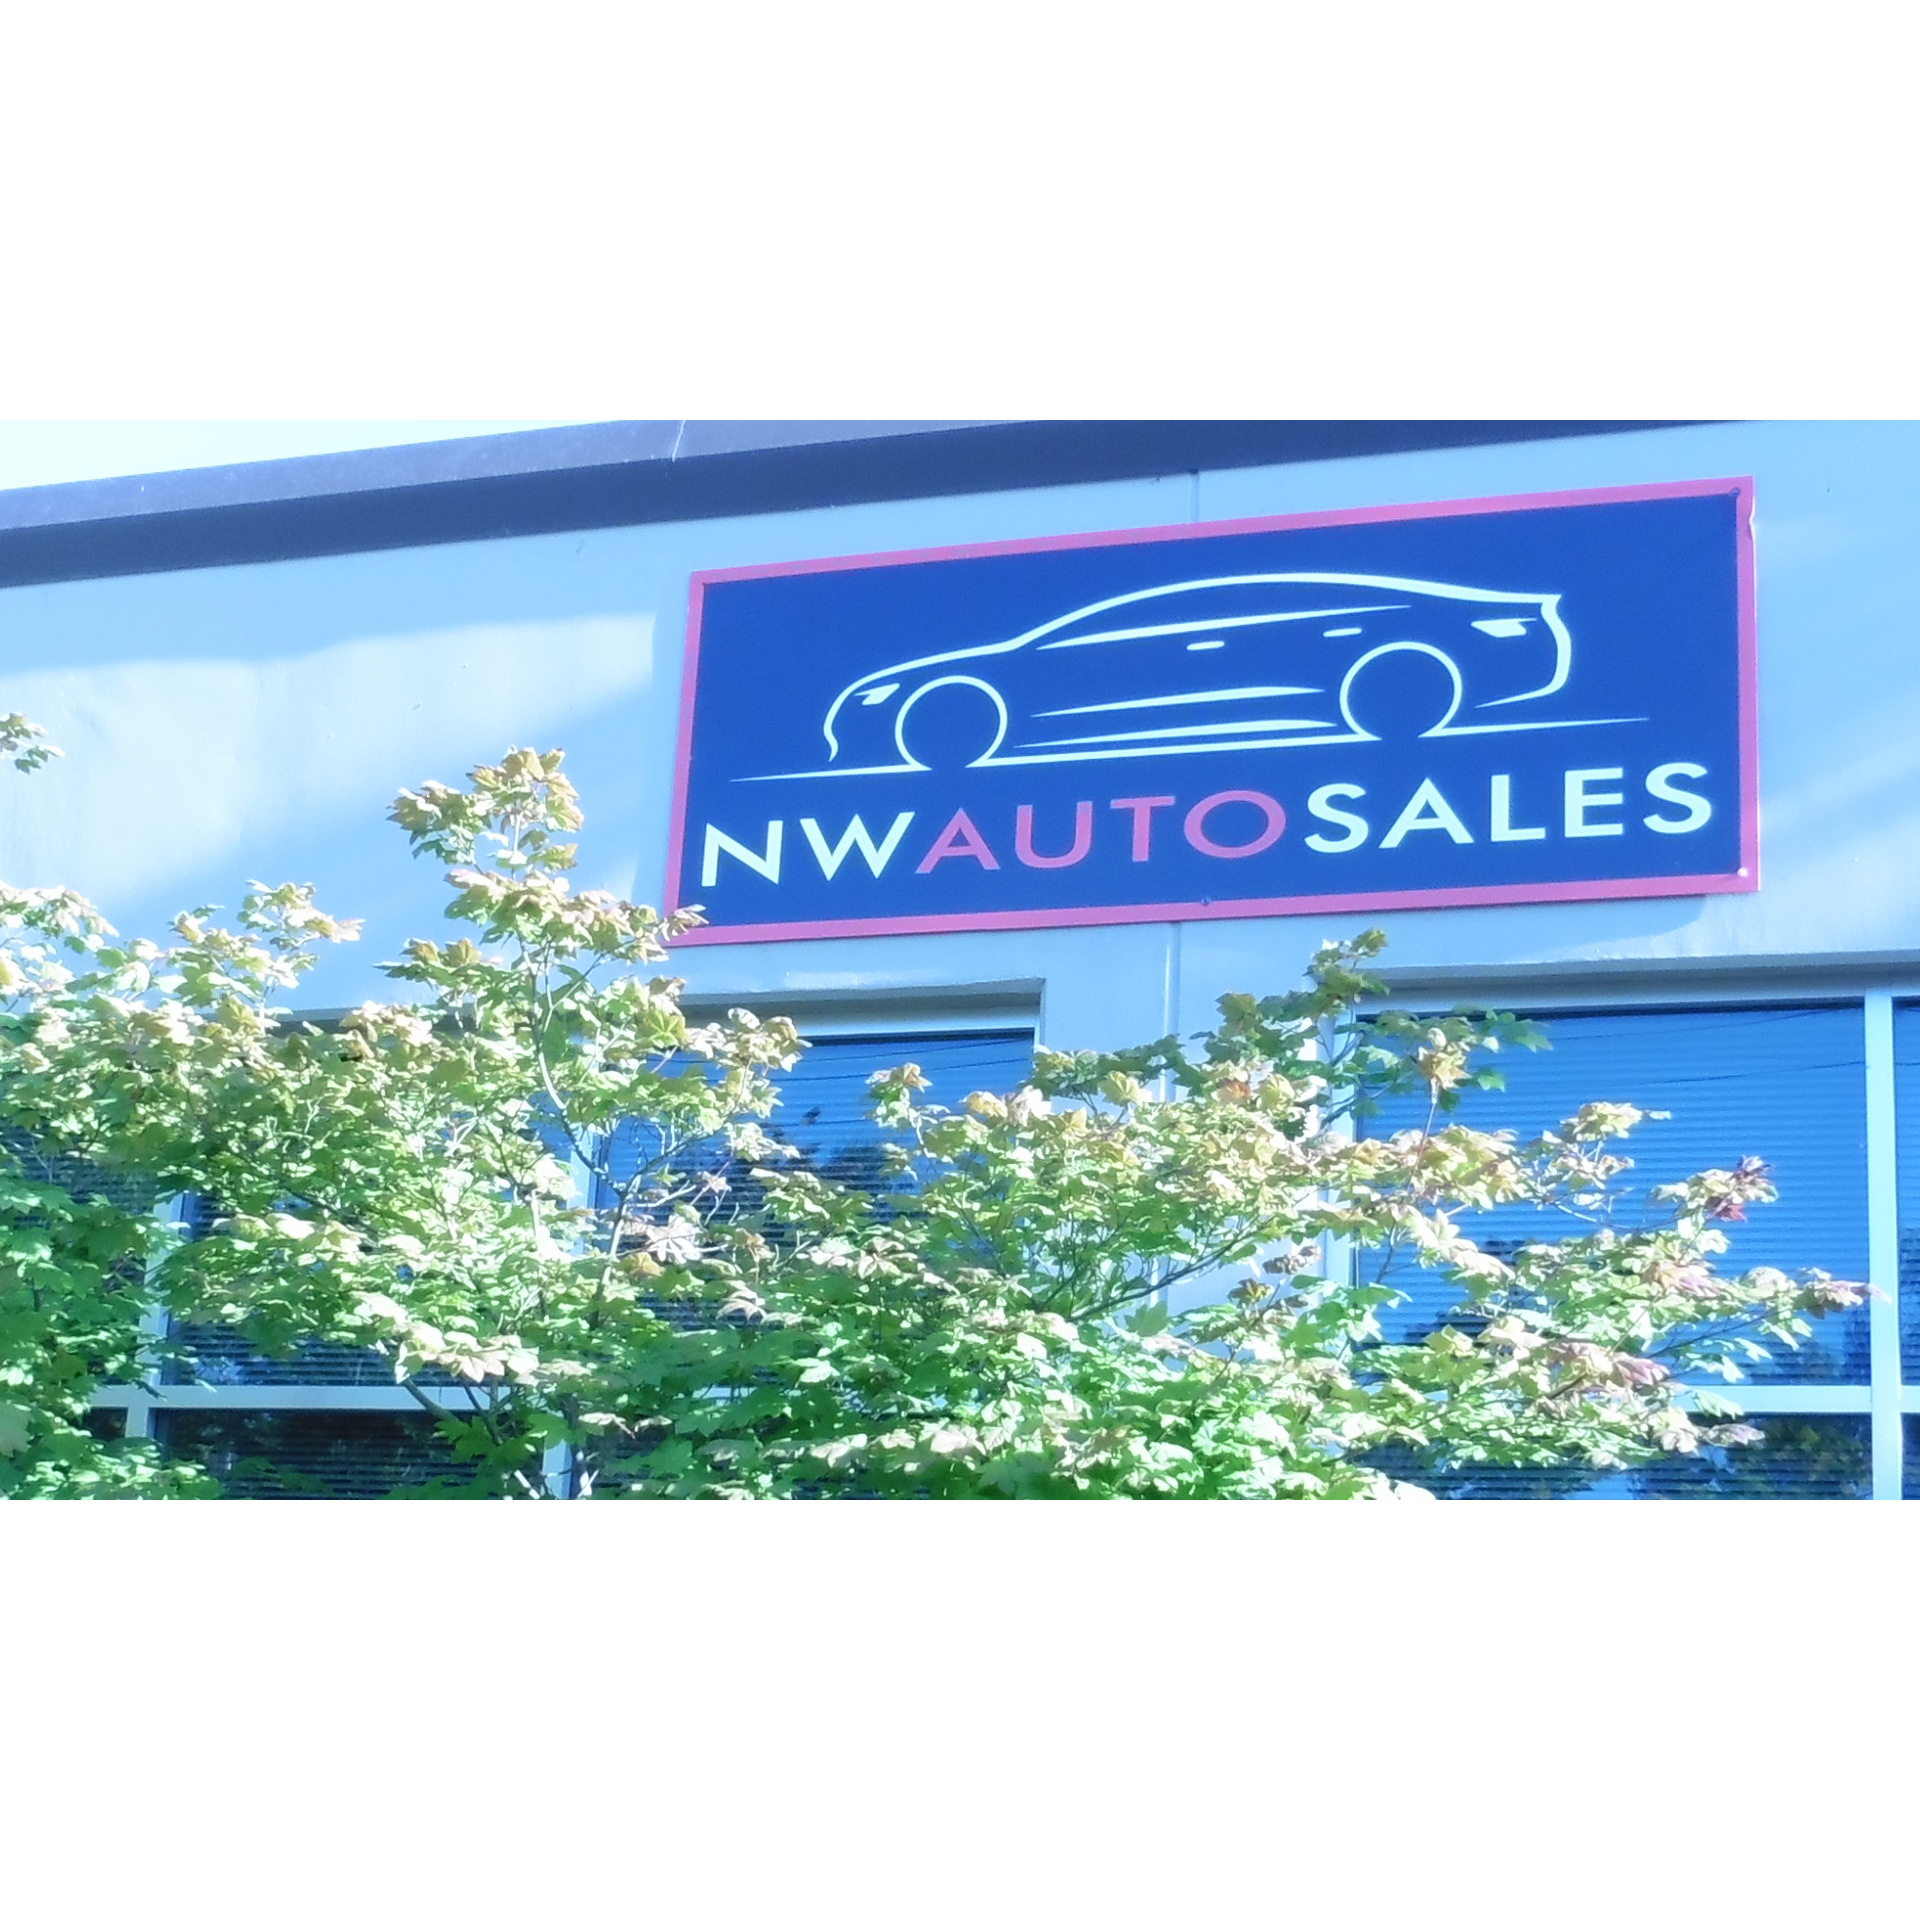 image of the NW AUTO SALES